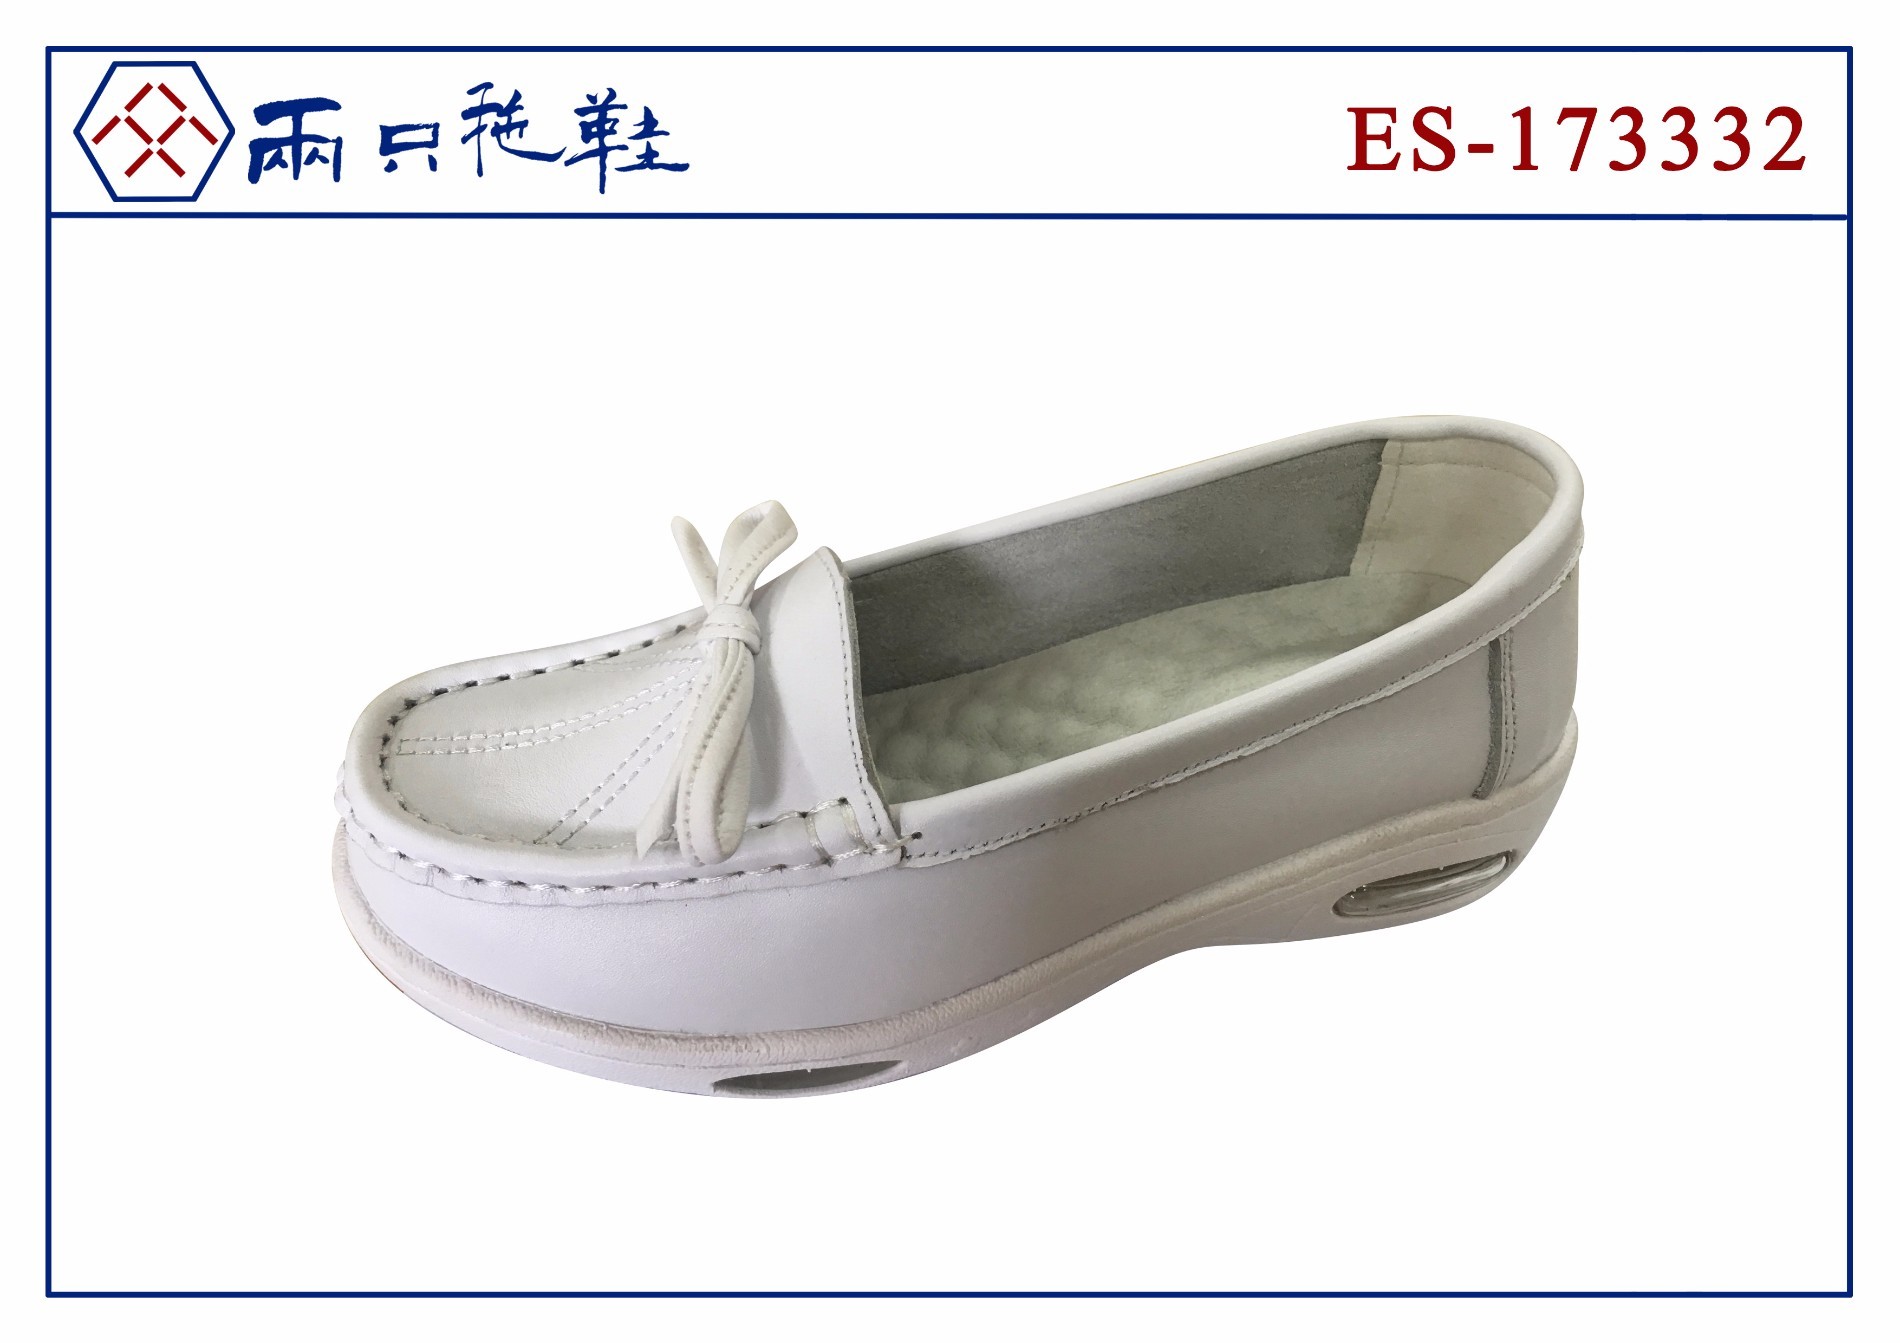 PU material shoes